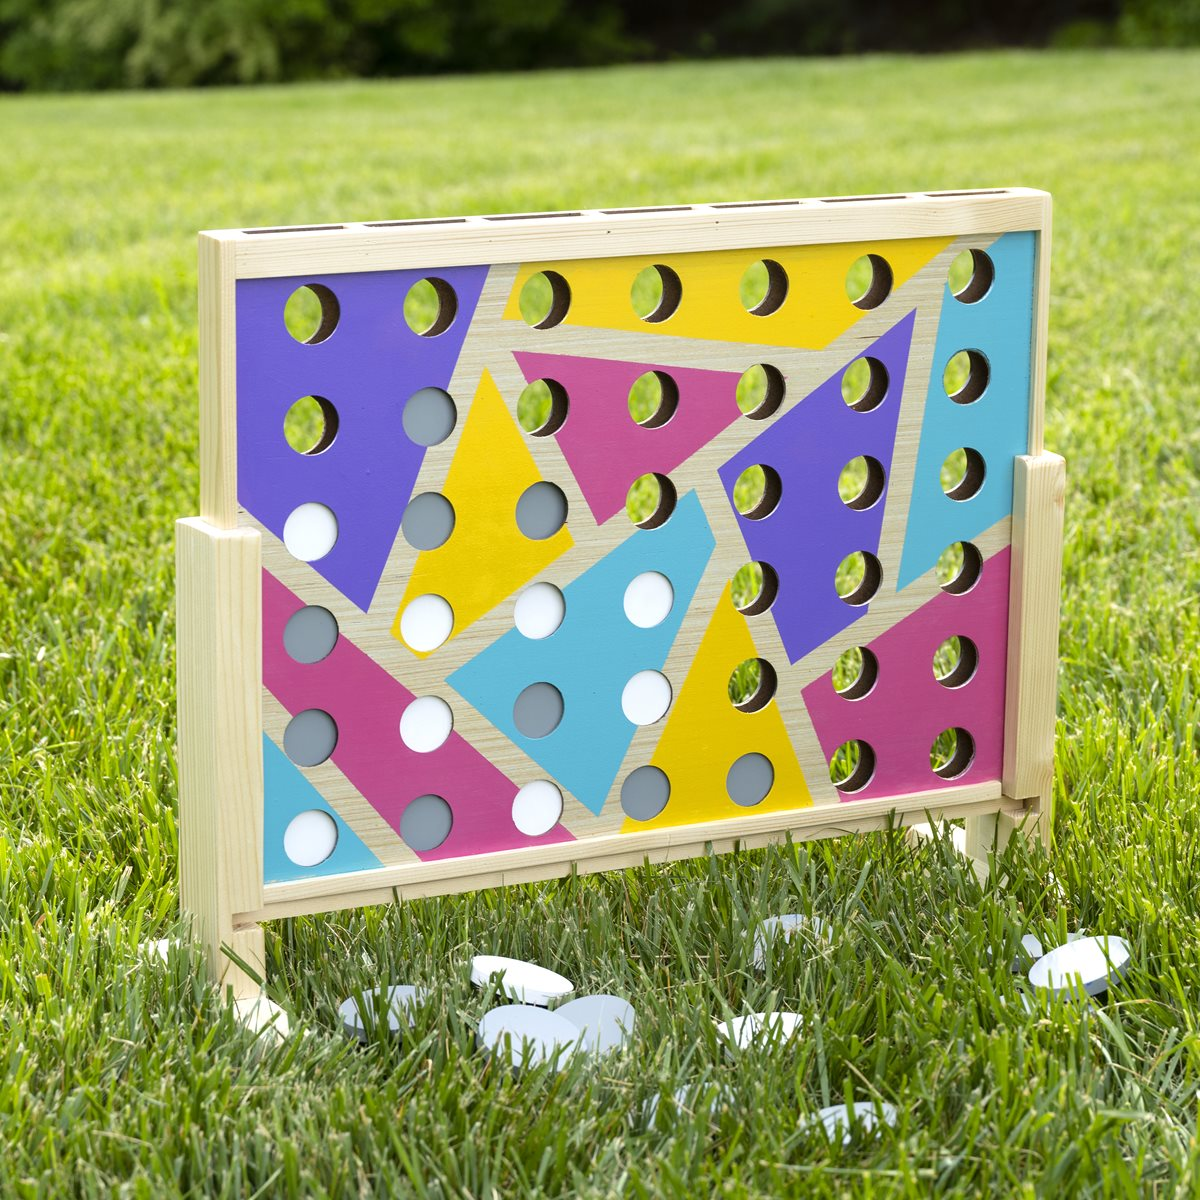 Giant Vertical Lawn Checkers